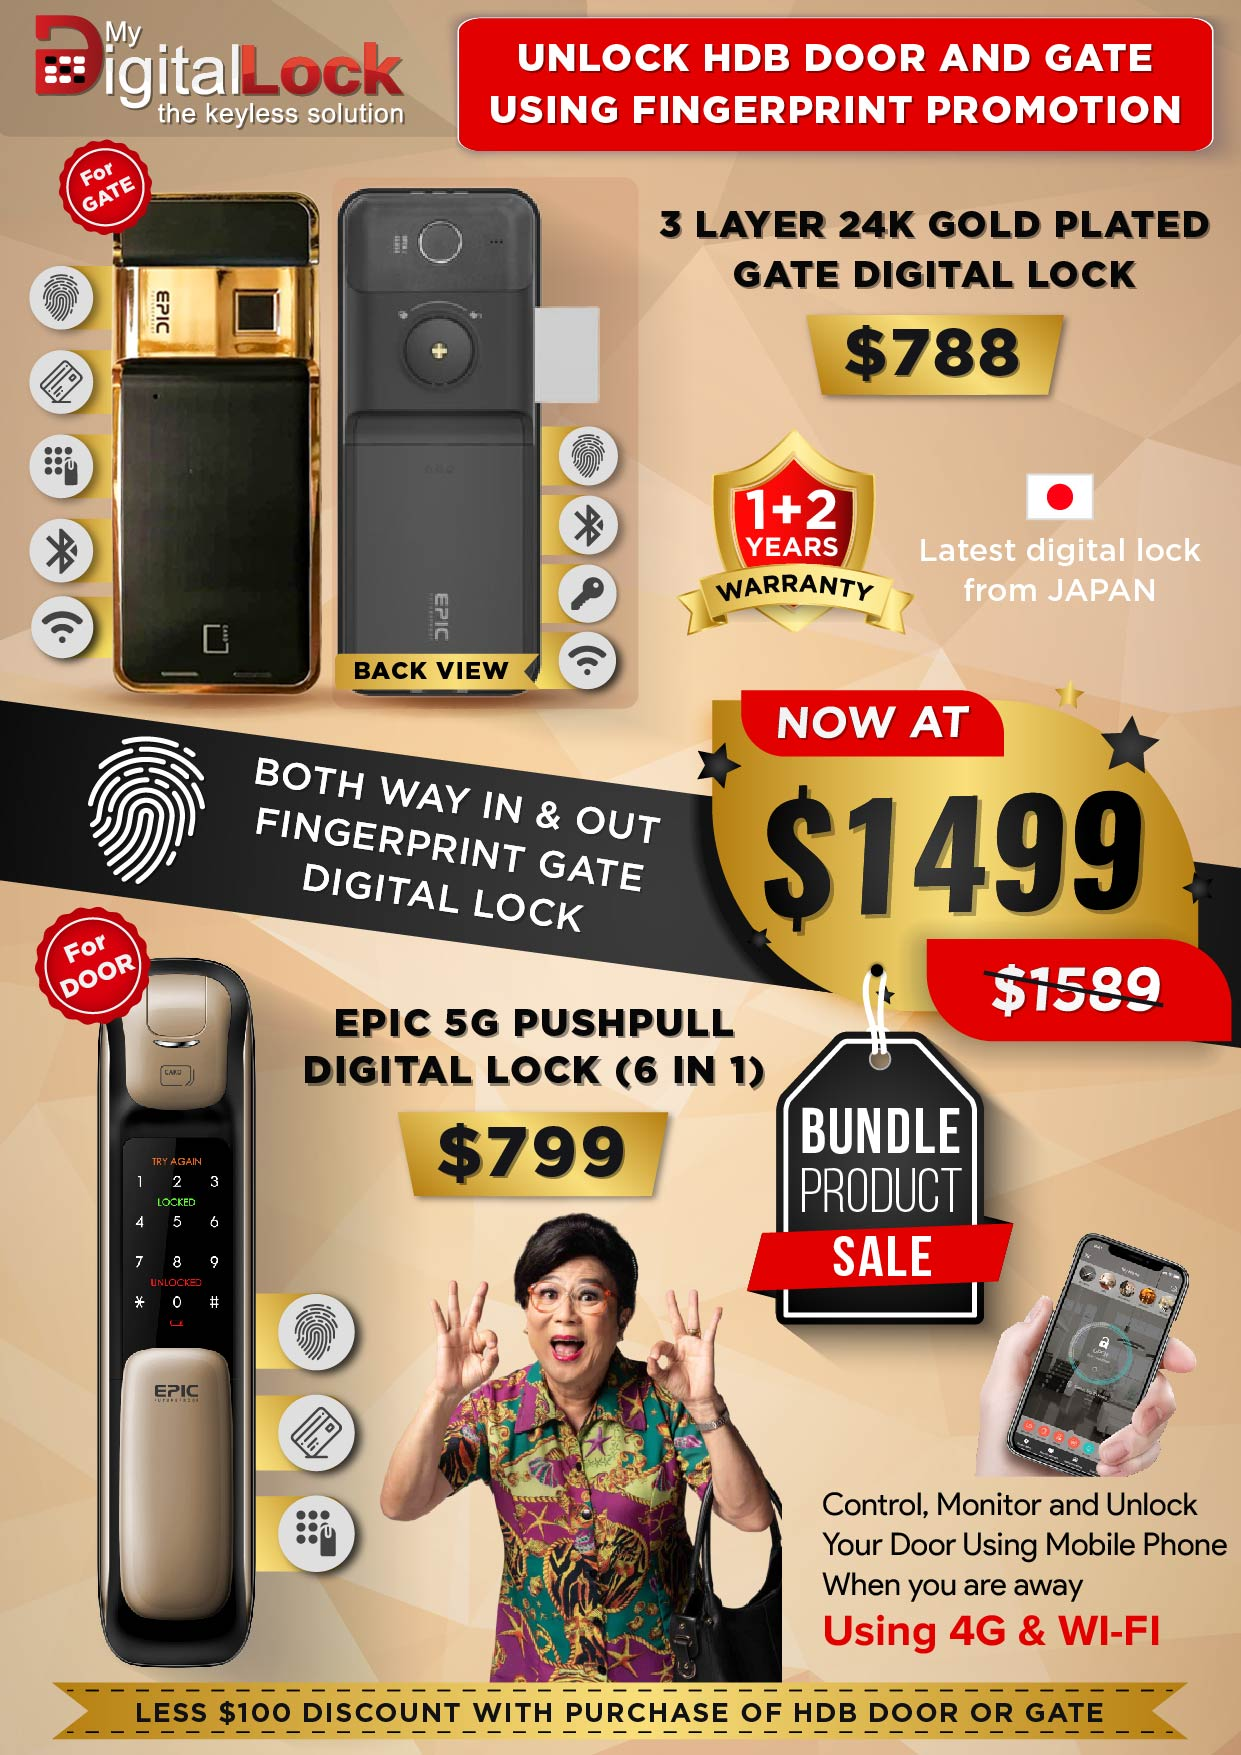 24K Gold Plate Gate and 5G Push Pull Digital Lock Promotion